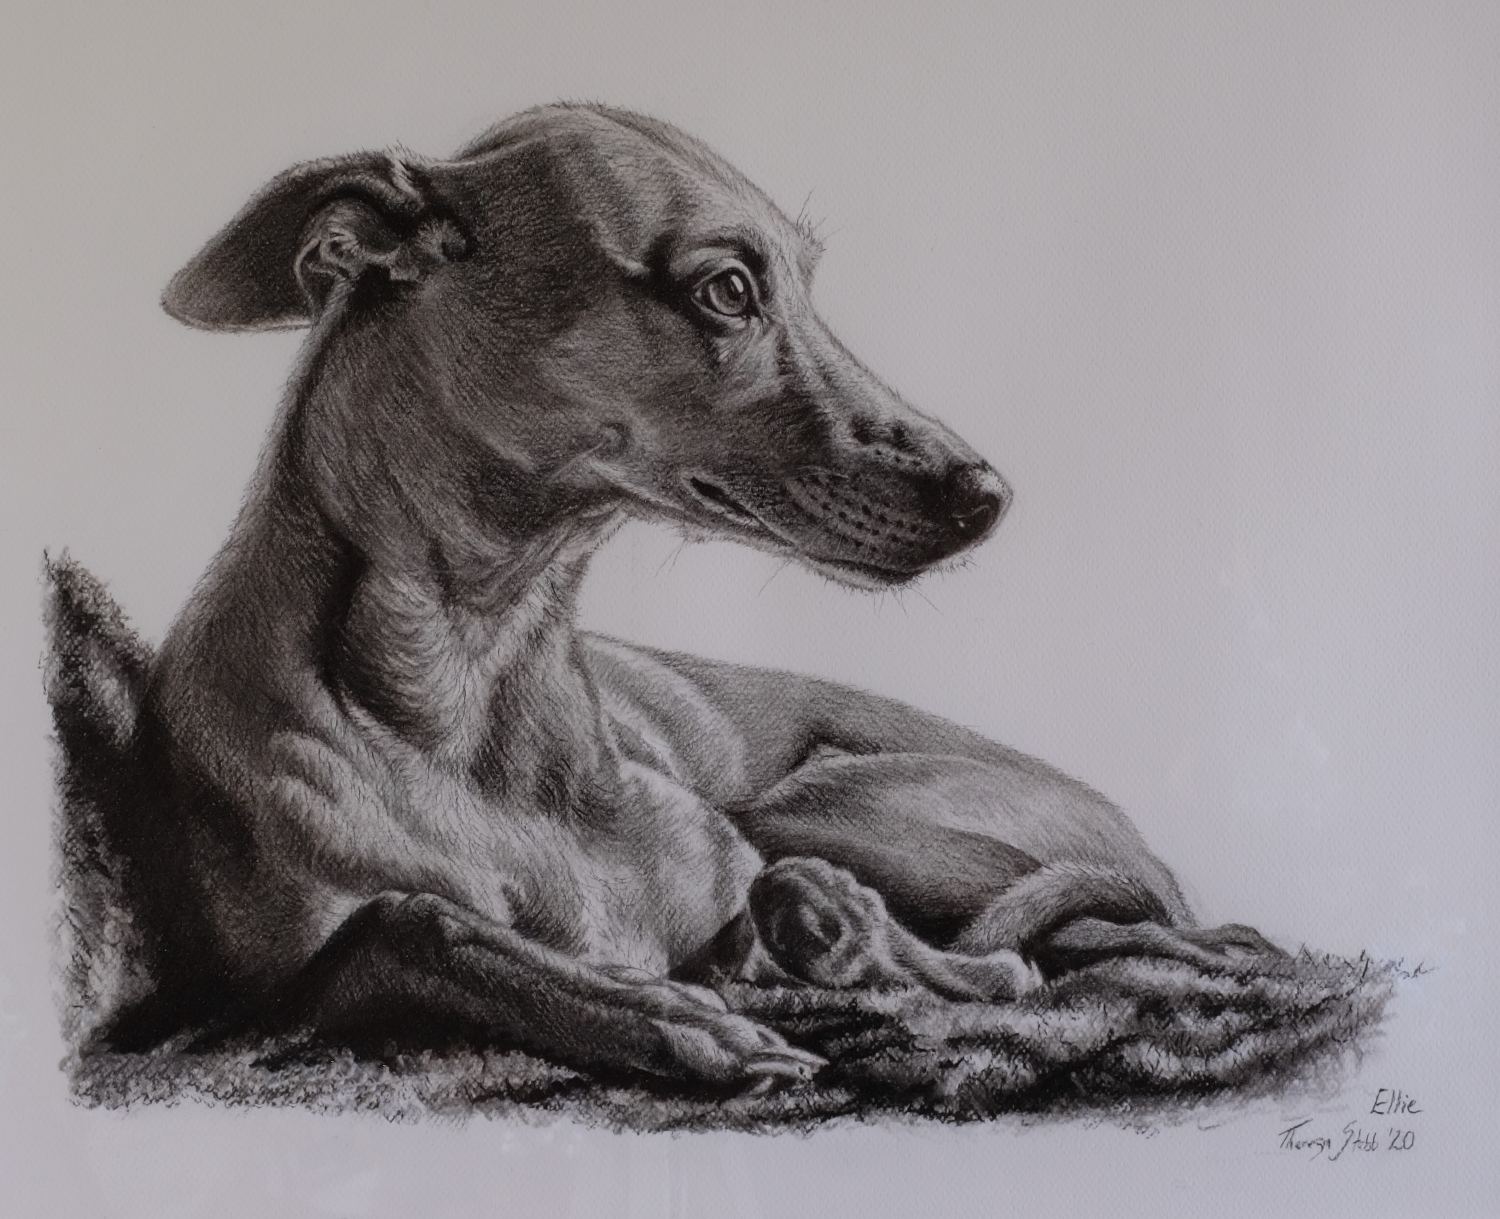 Ellie the Whippet, Charcoal on paper, 2020.